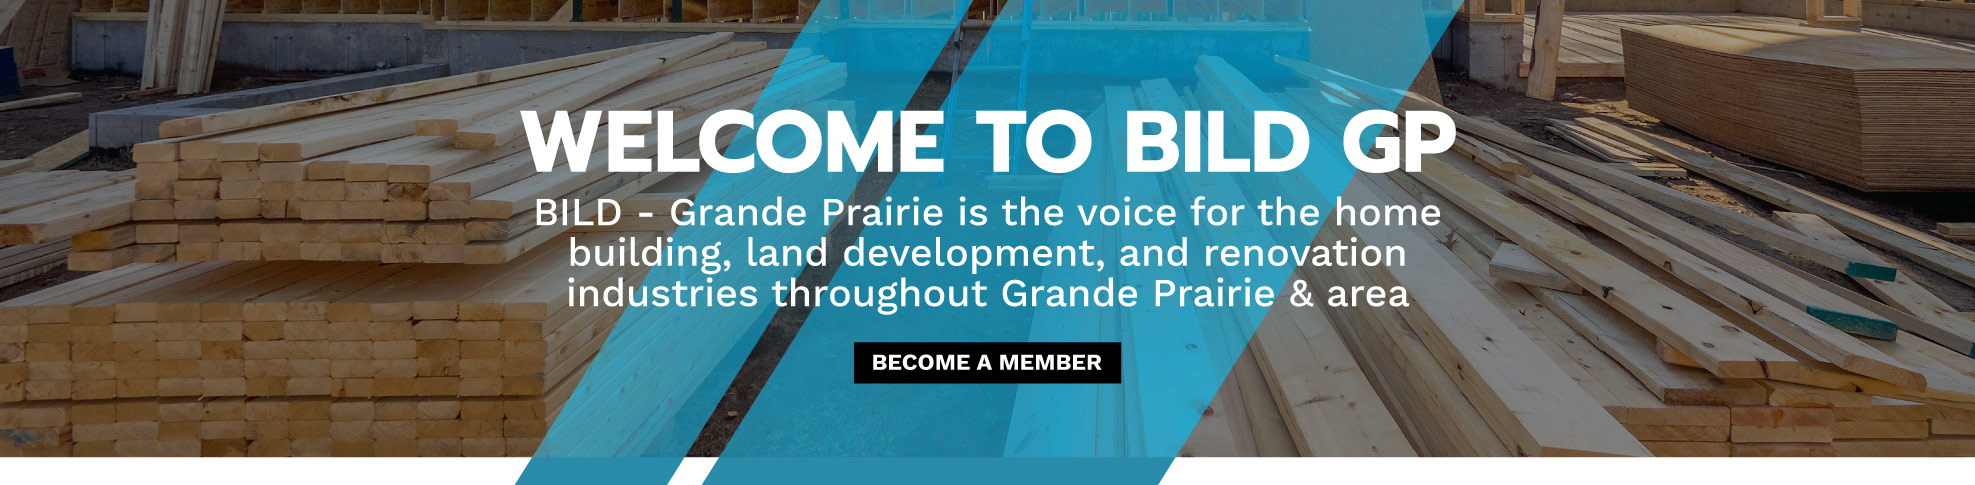 BILD GP - Home Builders Association in Grande Prairie - Homepage Slider 1